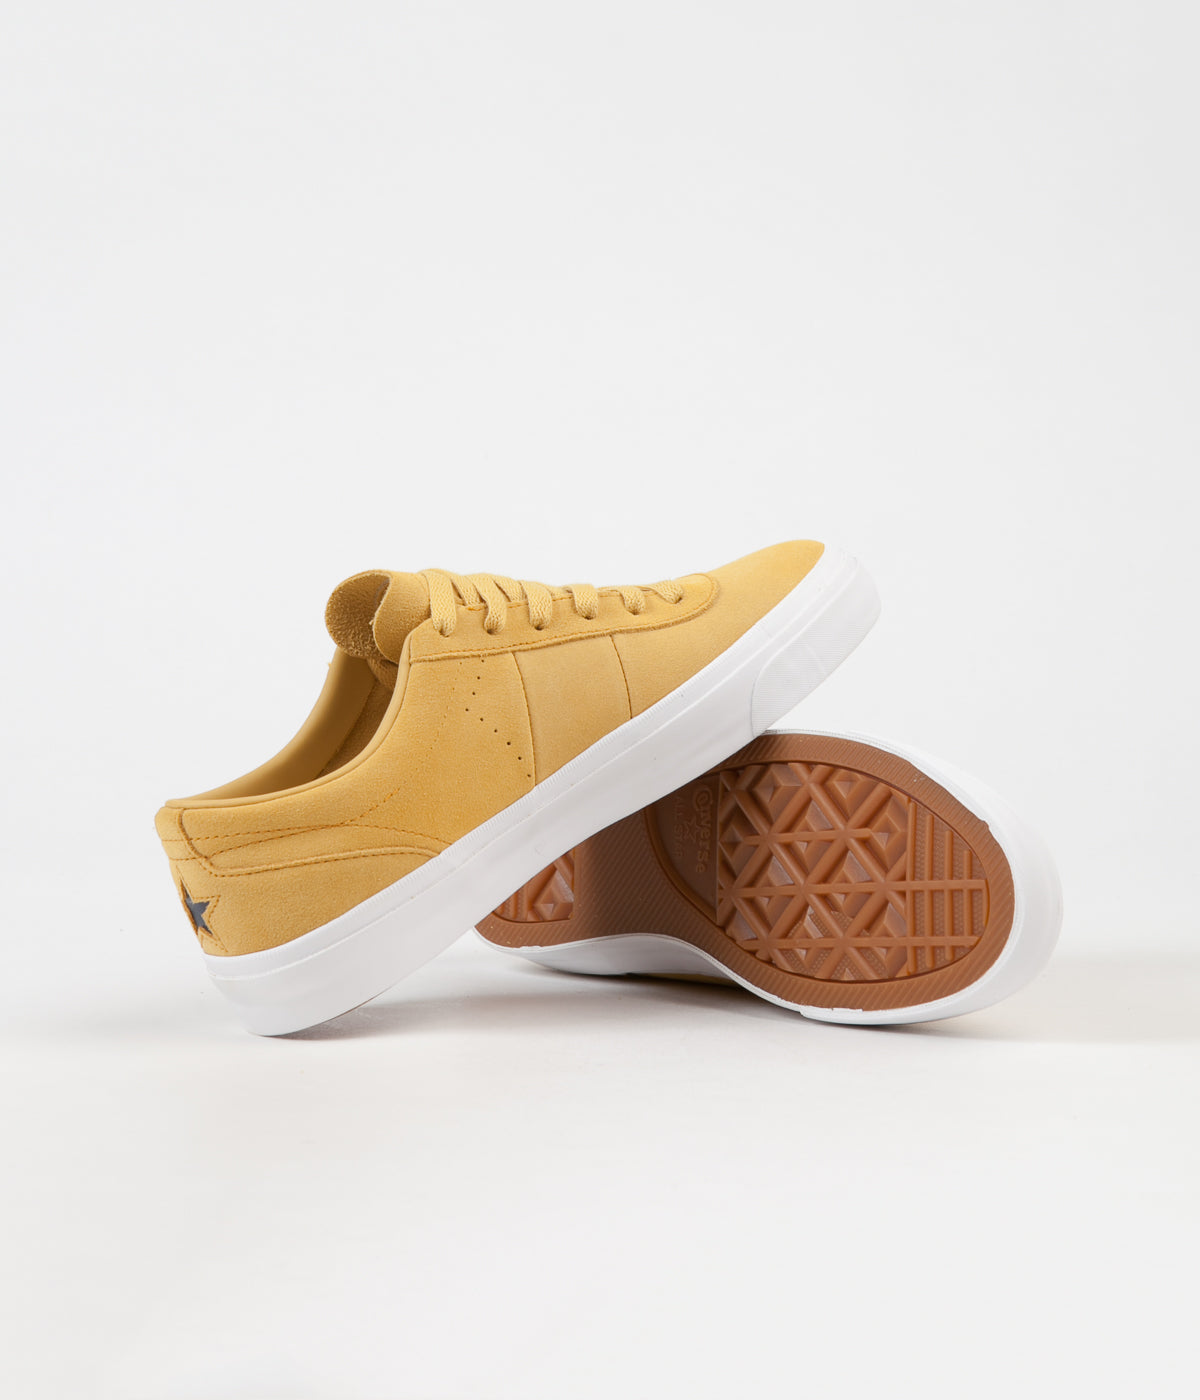 Converse One Star CC Pro Ox Shoes - Desert Marigold / Turmeric Gold